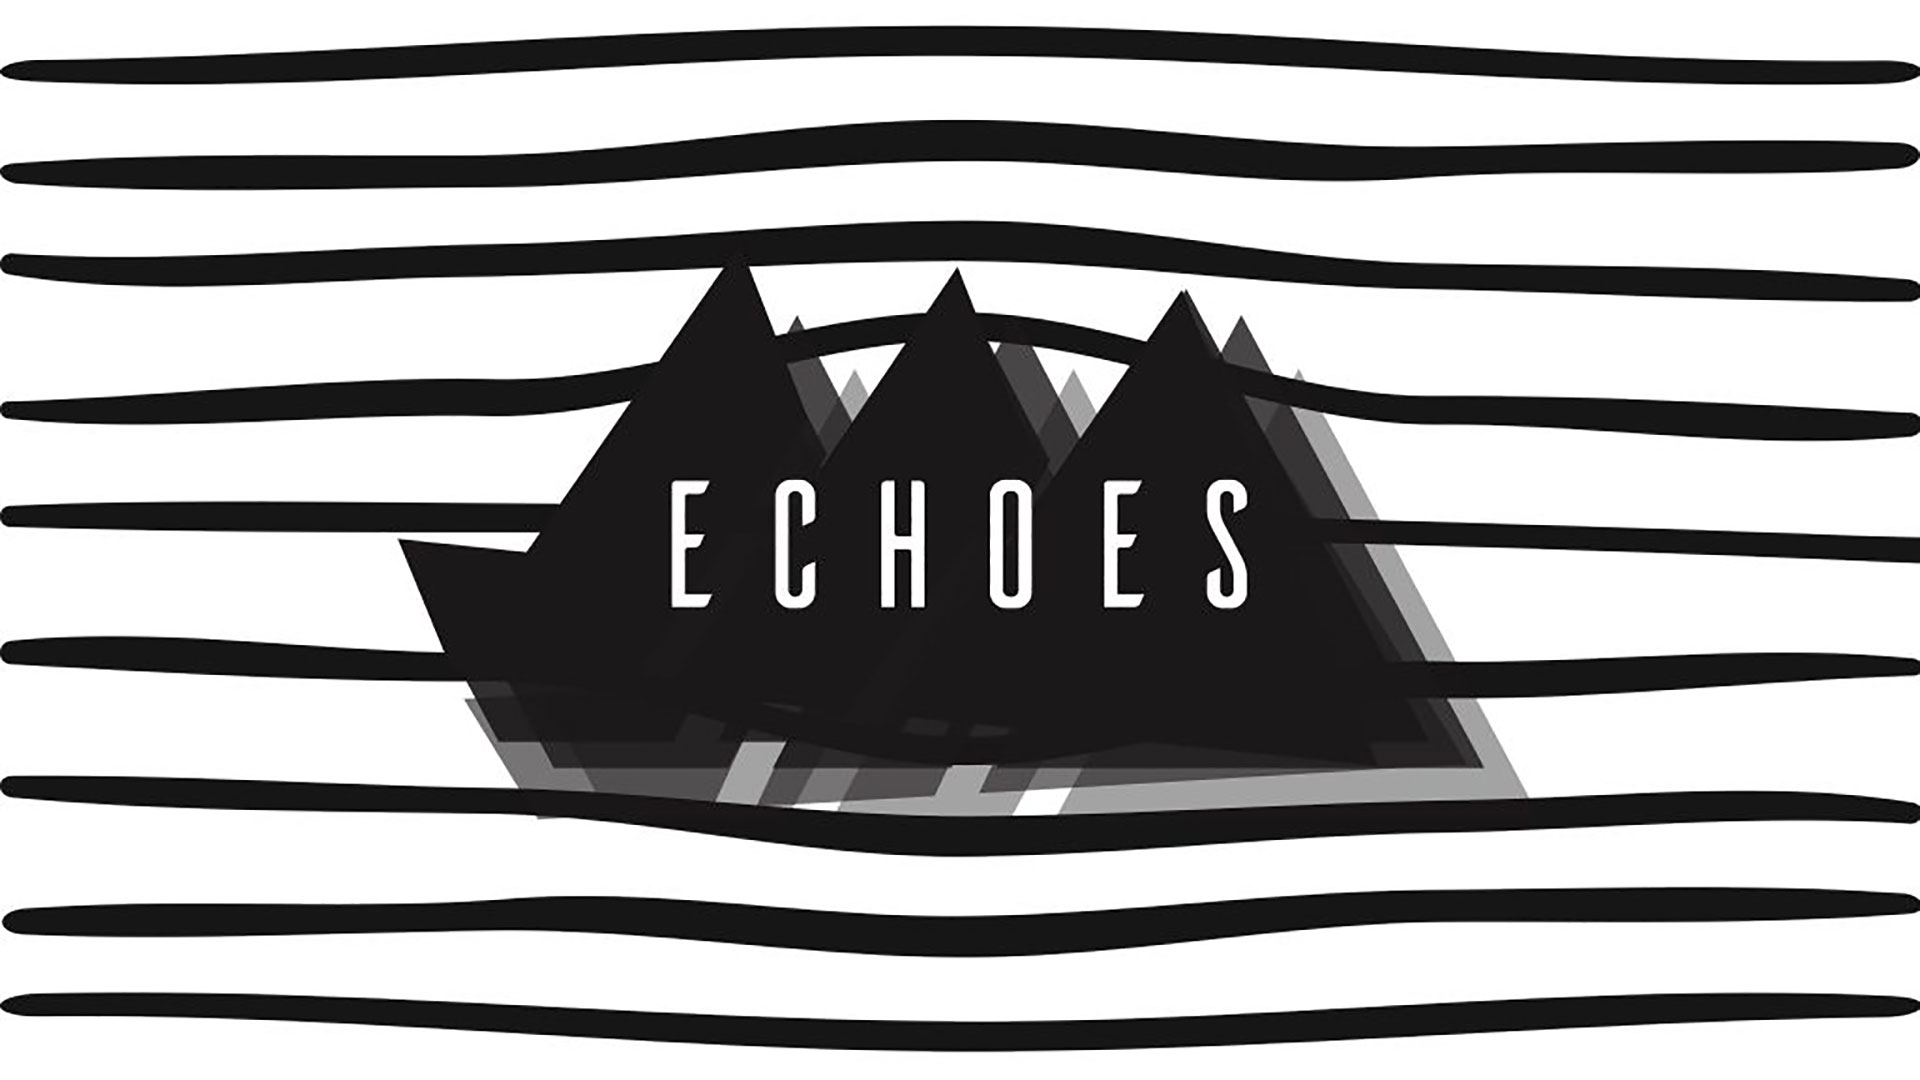 Series: Echoes